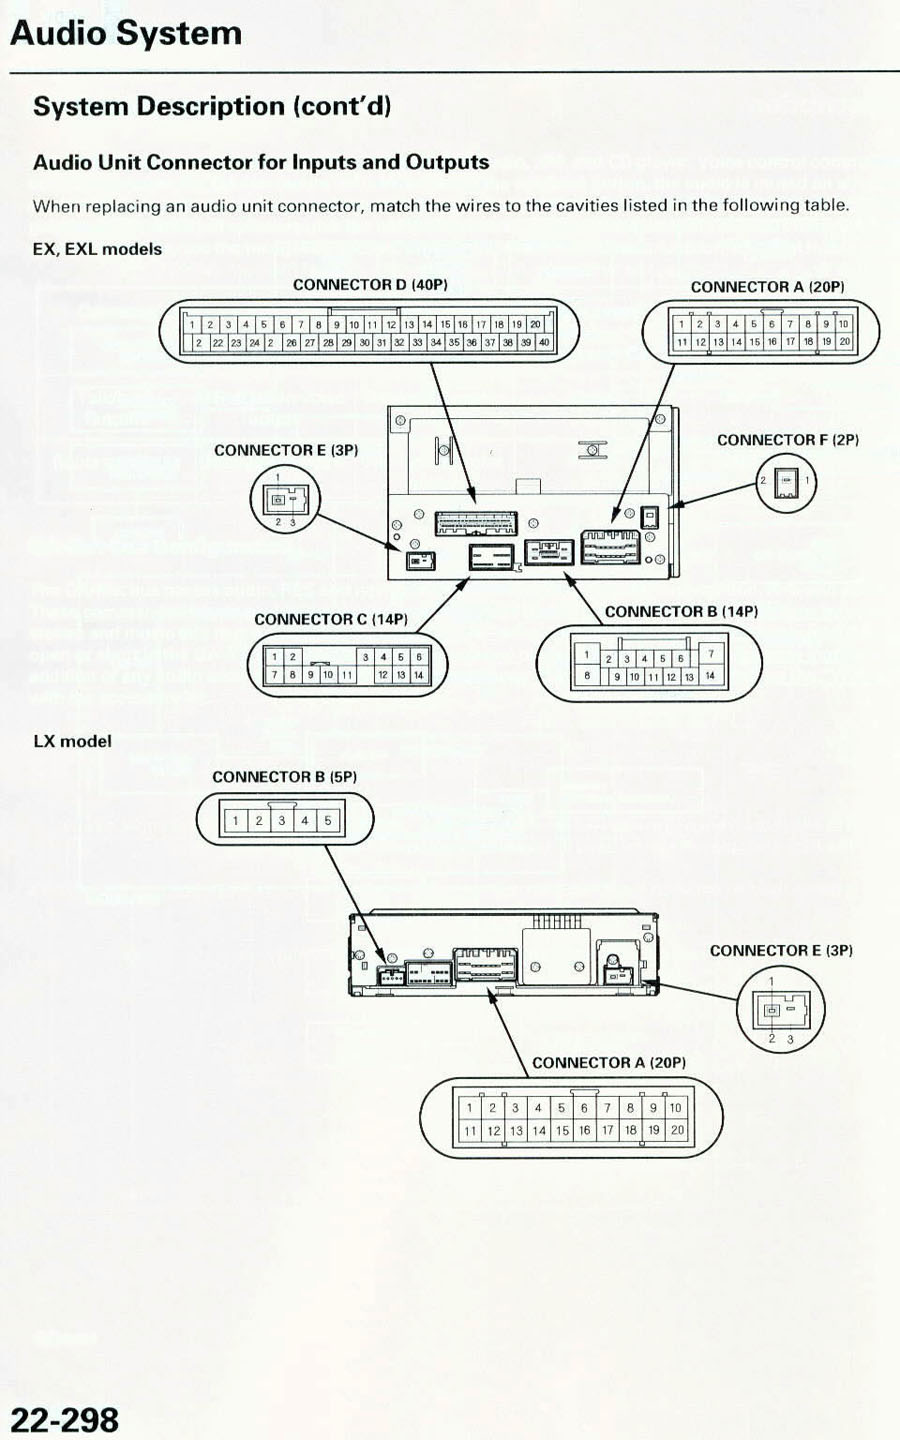 medium resolution of vision dvd player wiring diagram trusted wiring diagram honda goldwing wiring diagram 2006 exl res